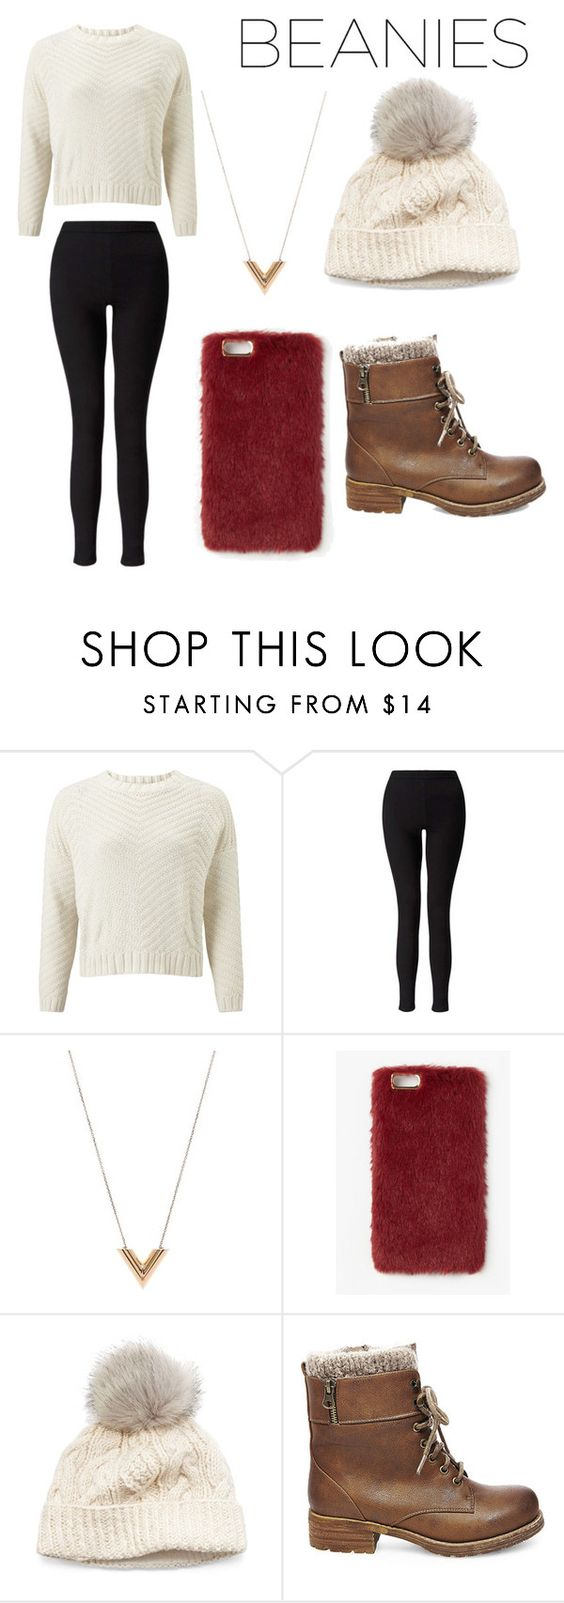 """Best beanie outfit ever 😊😊"" by siyaw ❤ liked on Polyvore featuring John Lewis, Miss Selfridge, Louis Vuitton, Missguided, SIJJL and Steve Madden"